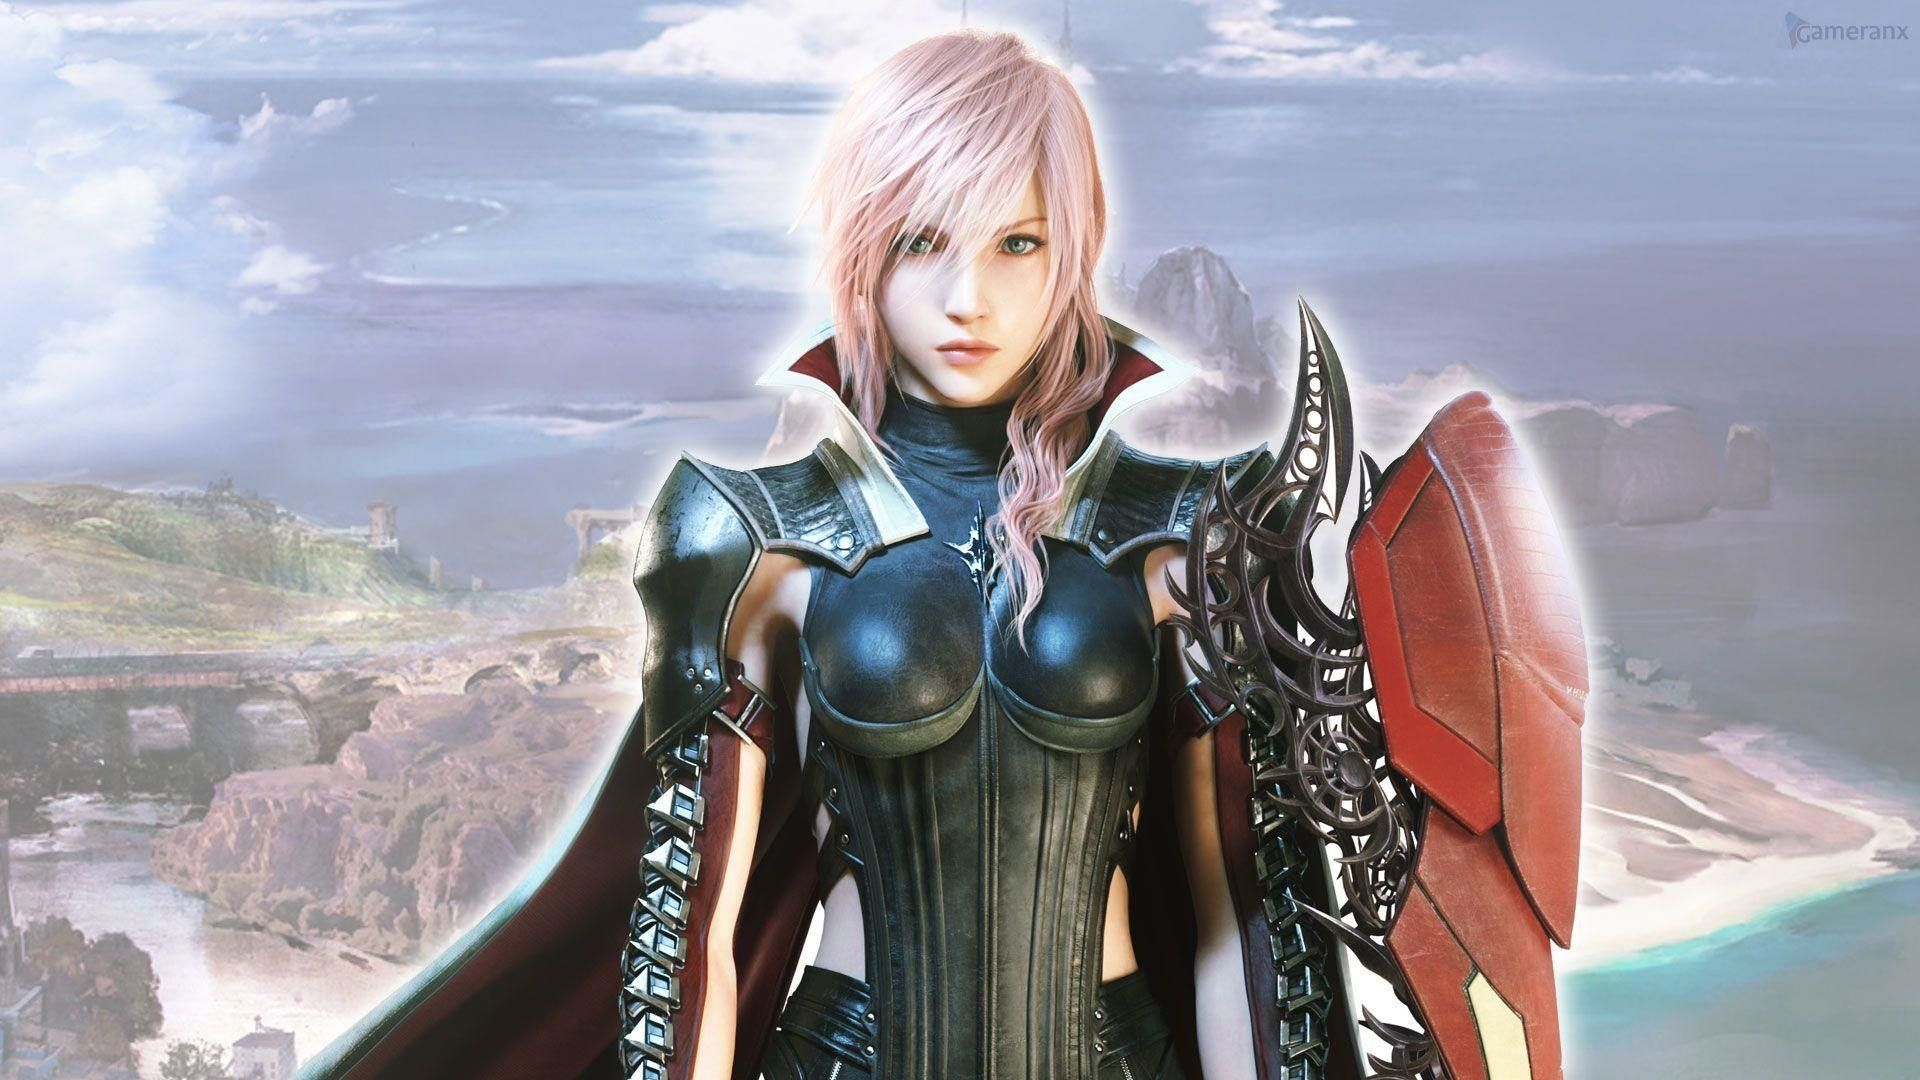 1920x1080 lightning returns: final fantasy xiii wallpapers | hd